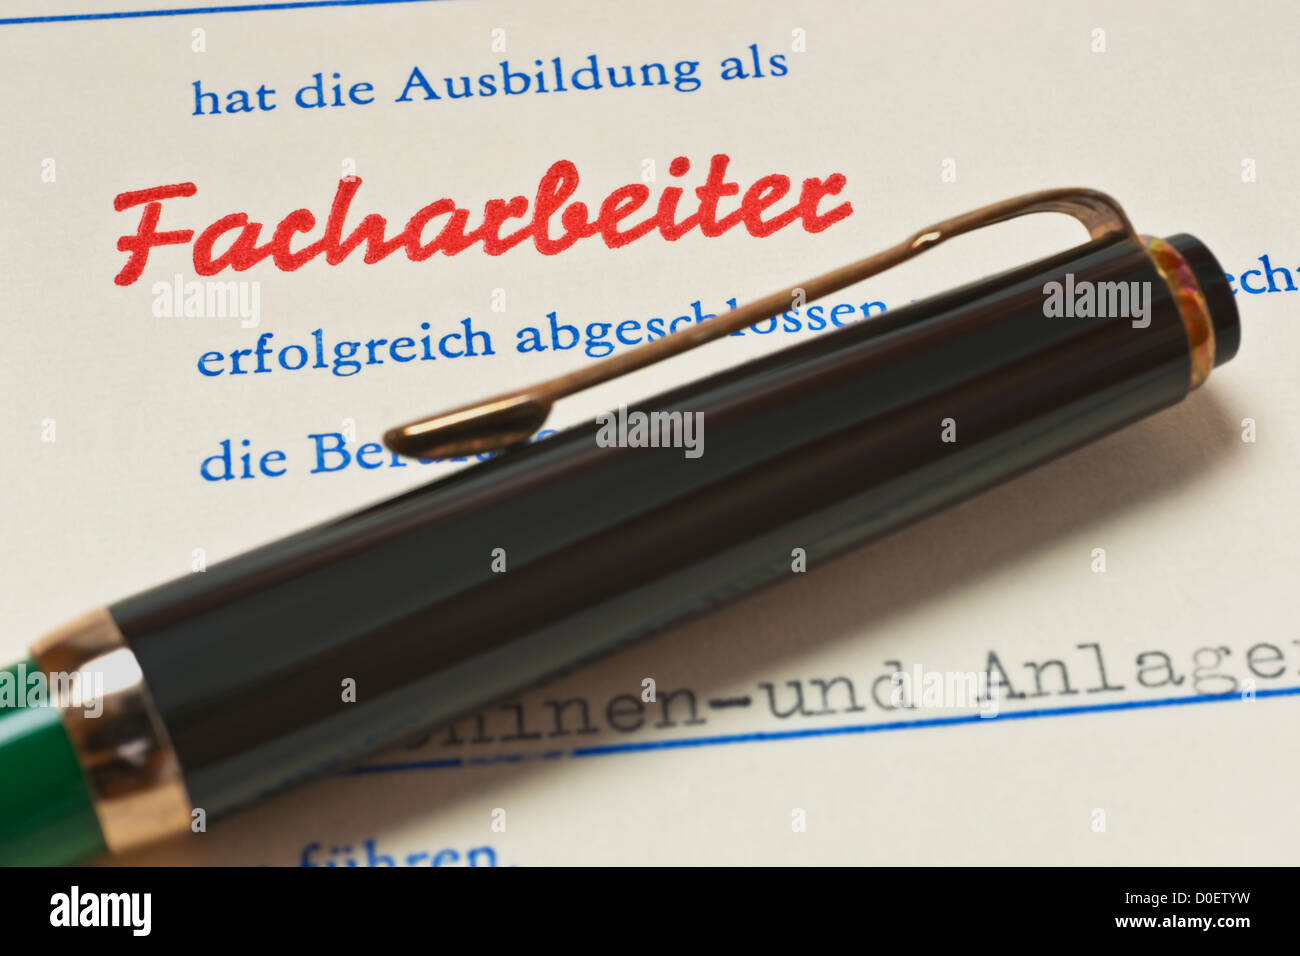 Detail photo of a craft certificate from GDR in 1989, a pen lies alongside - Stock Image